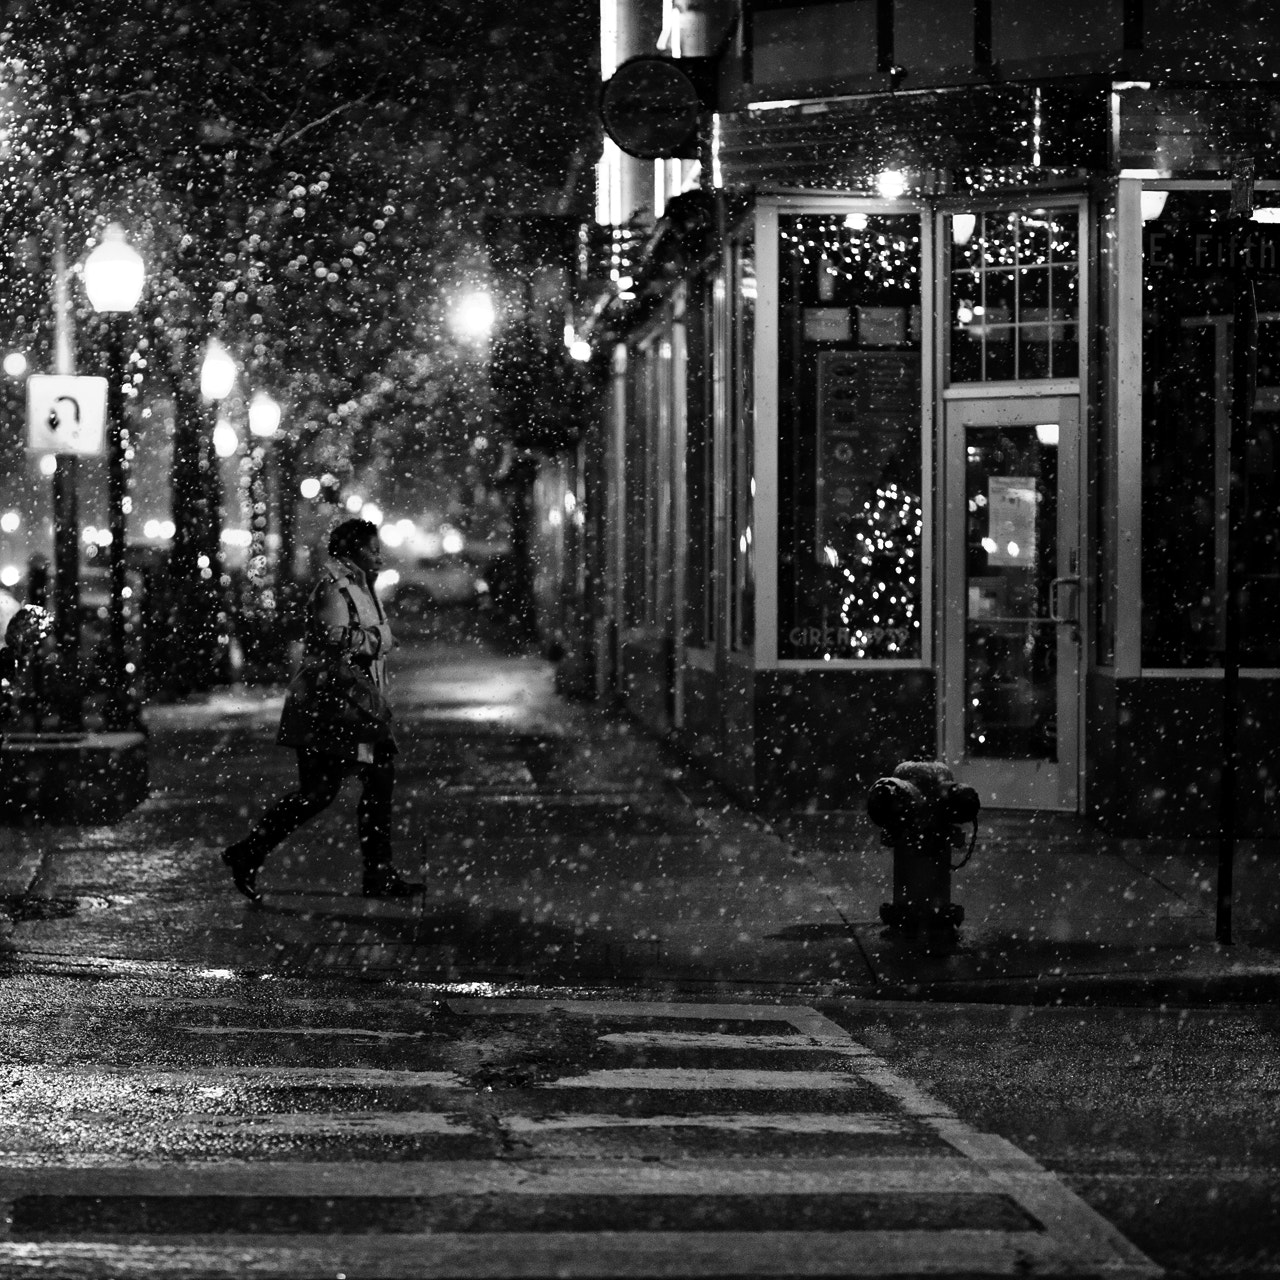 Photograph counting snowflakes on a quiet night by Brian Day on 500px